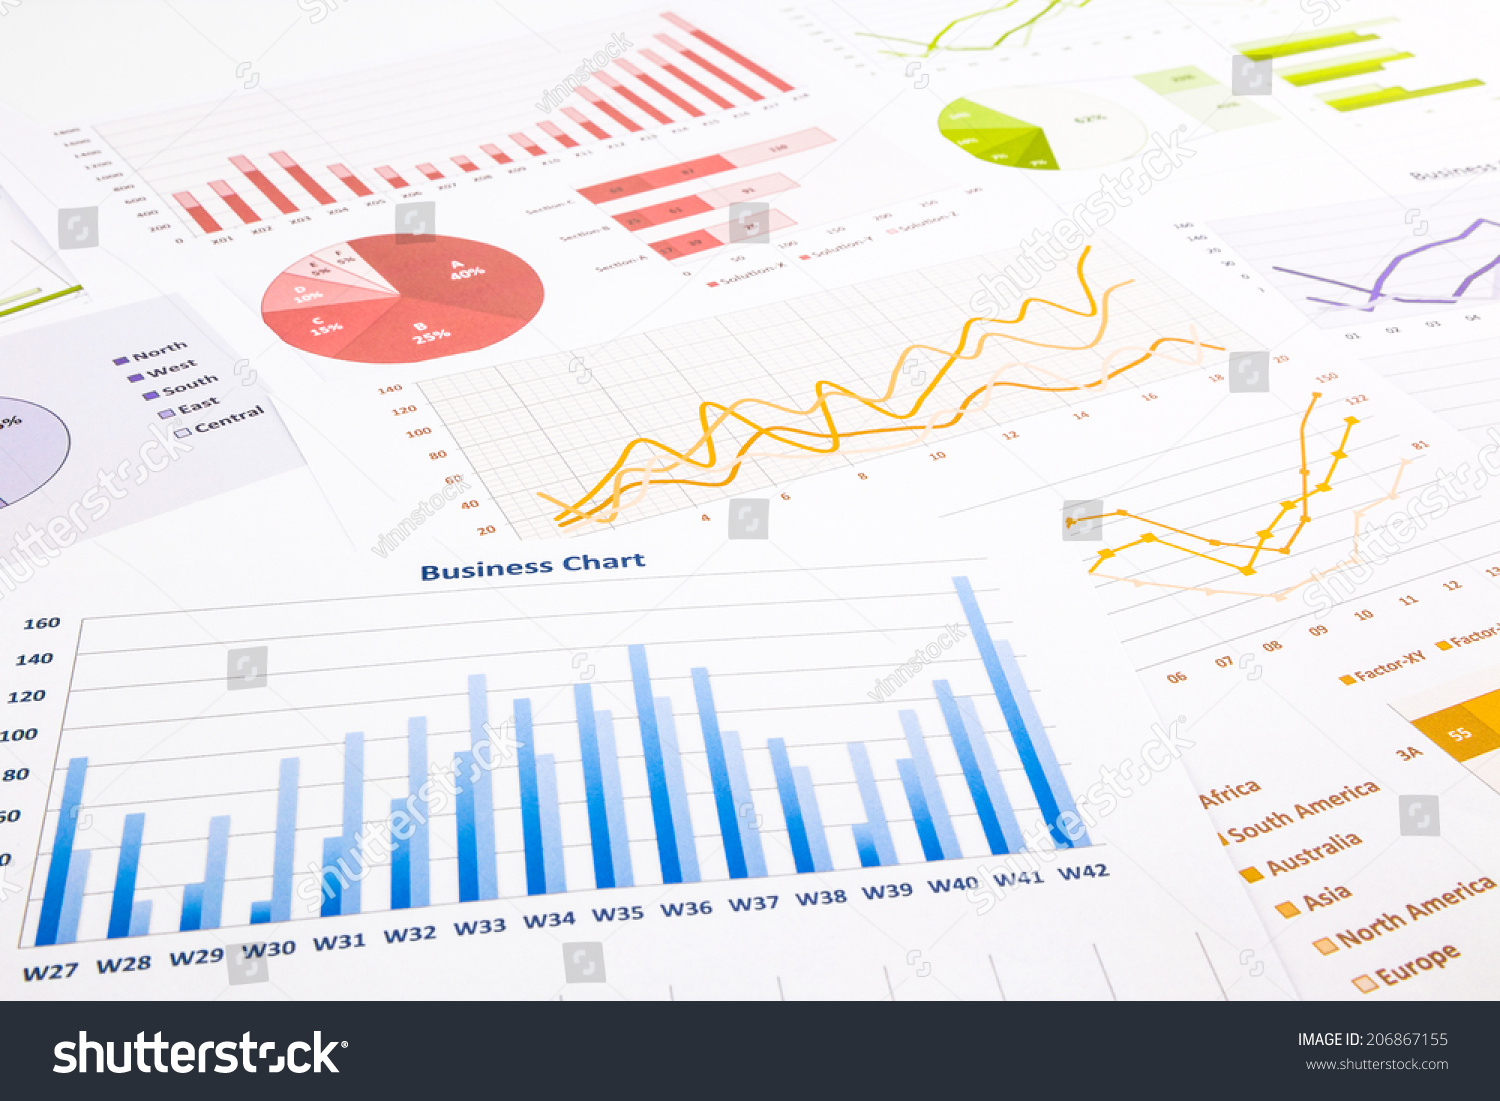 Business Report Writing Tips